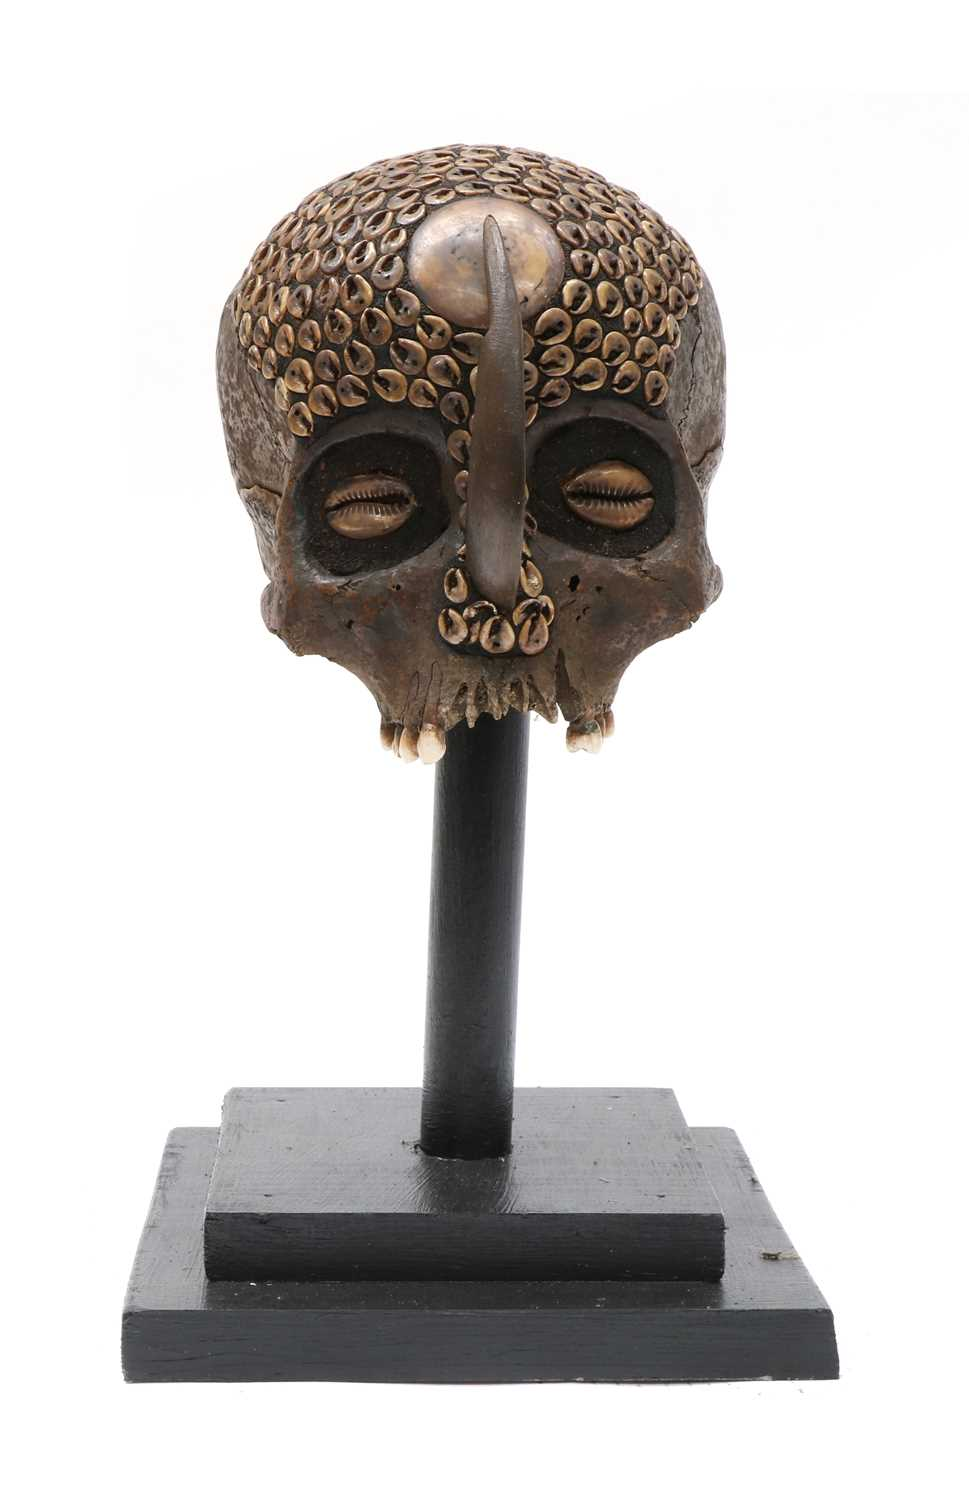 Lot 88 - A DAYAK HEADHUNTER TROPHY